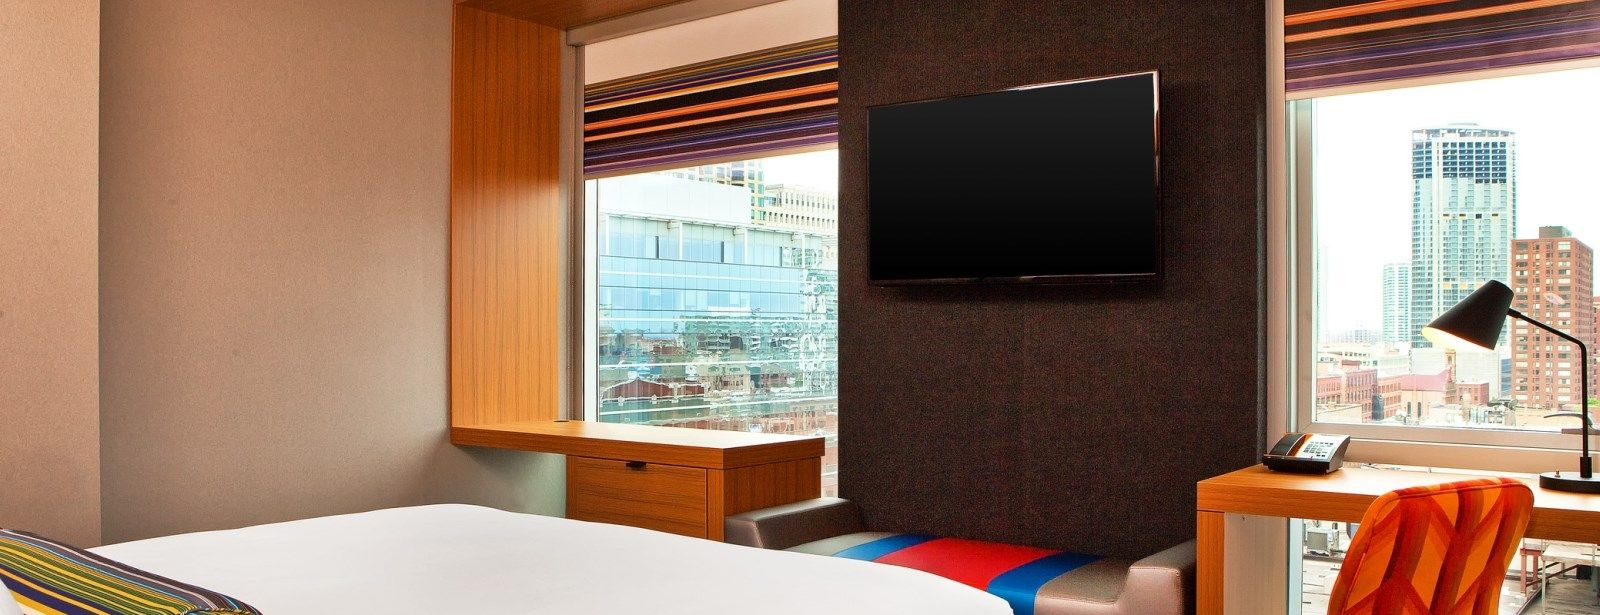 Chicago Accommodations - Aloft King Room